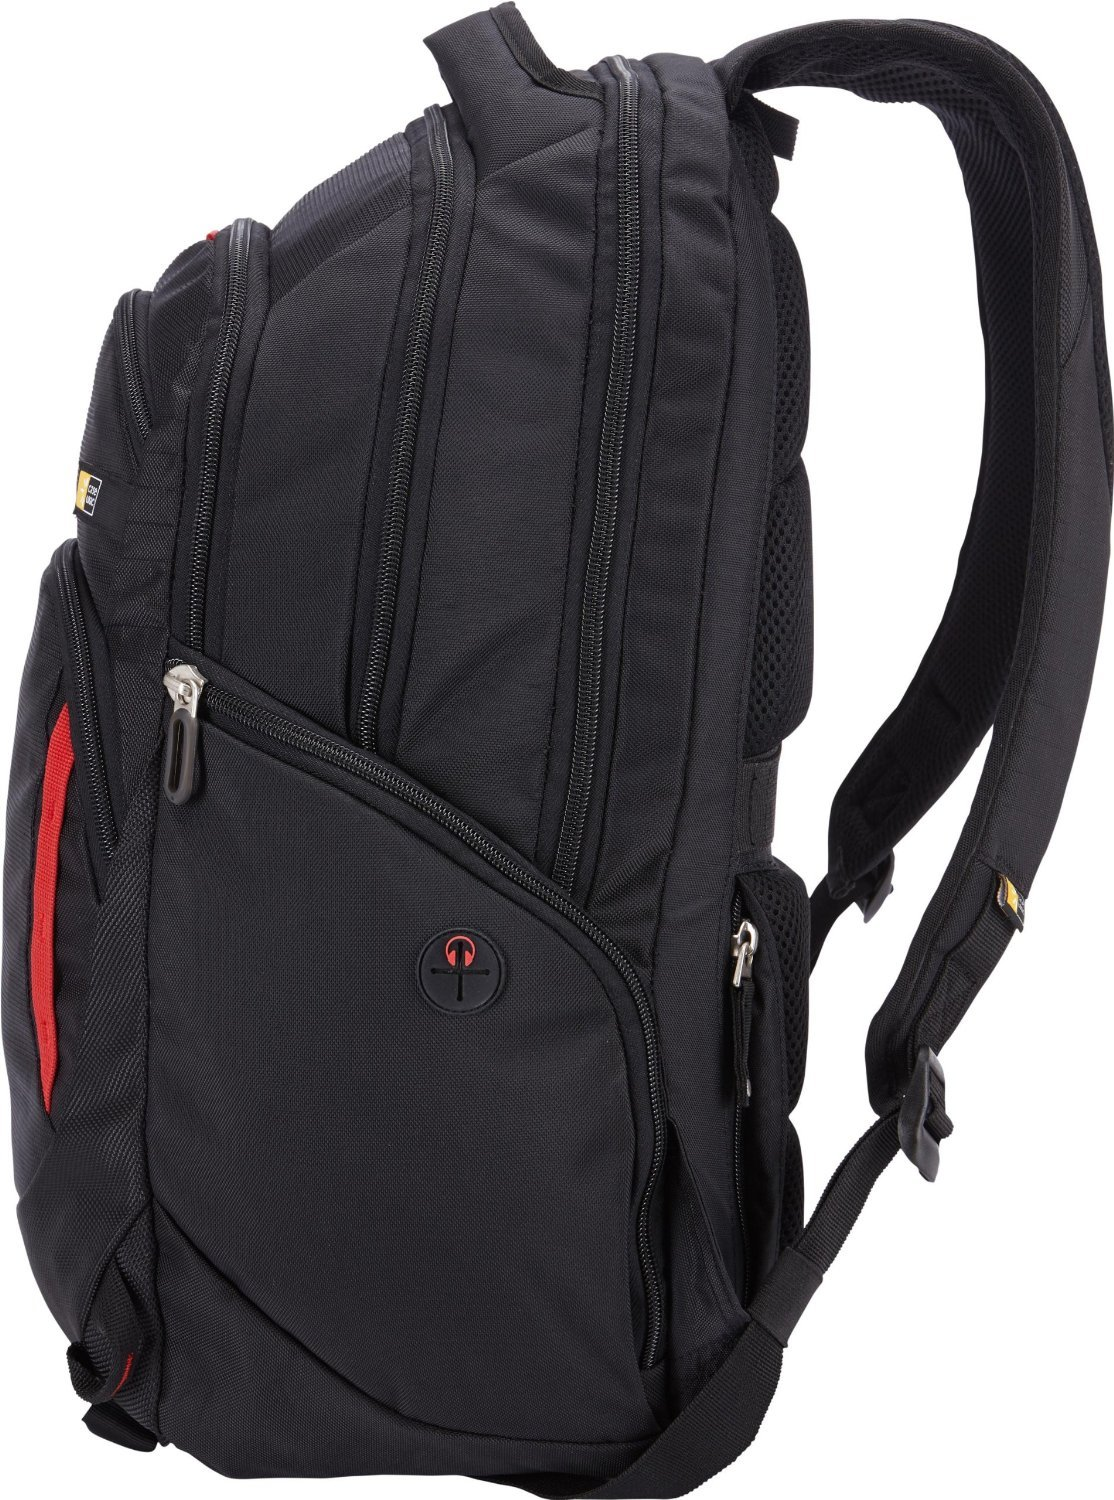 Case Logic Evolution Deluxe Backpack for Laptops and Tablets BPED-115